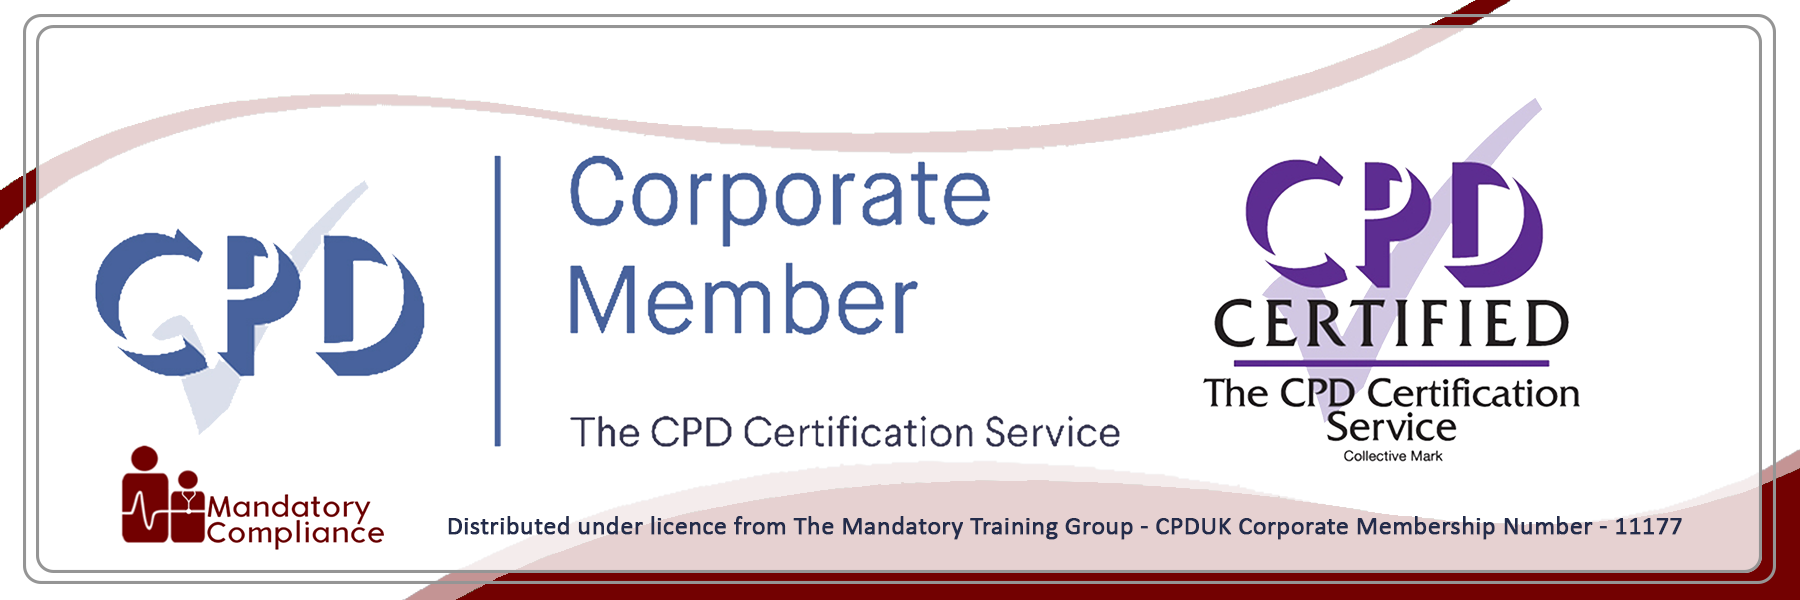 Online Non-Clinical Mandatory Training and Statutory Training - E-Learning Courses - Mandatory Compliance UK -